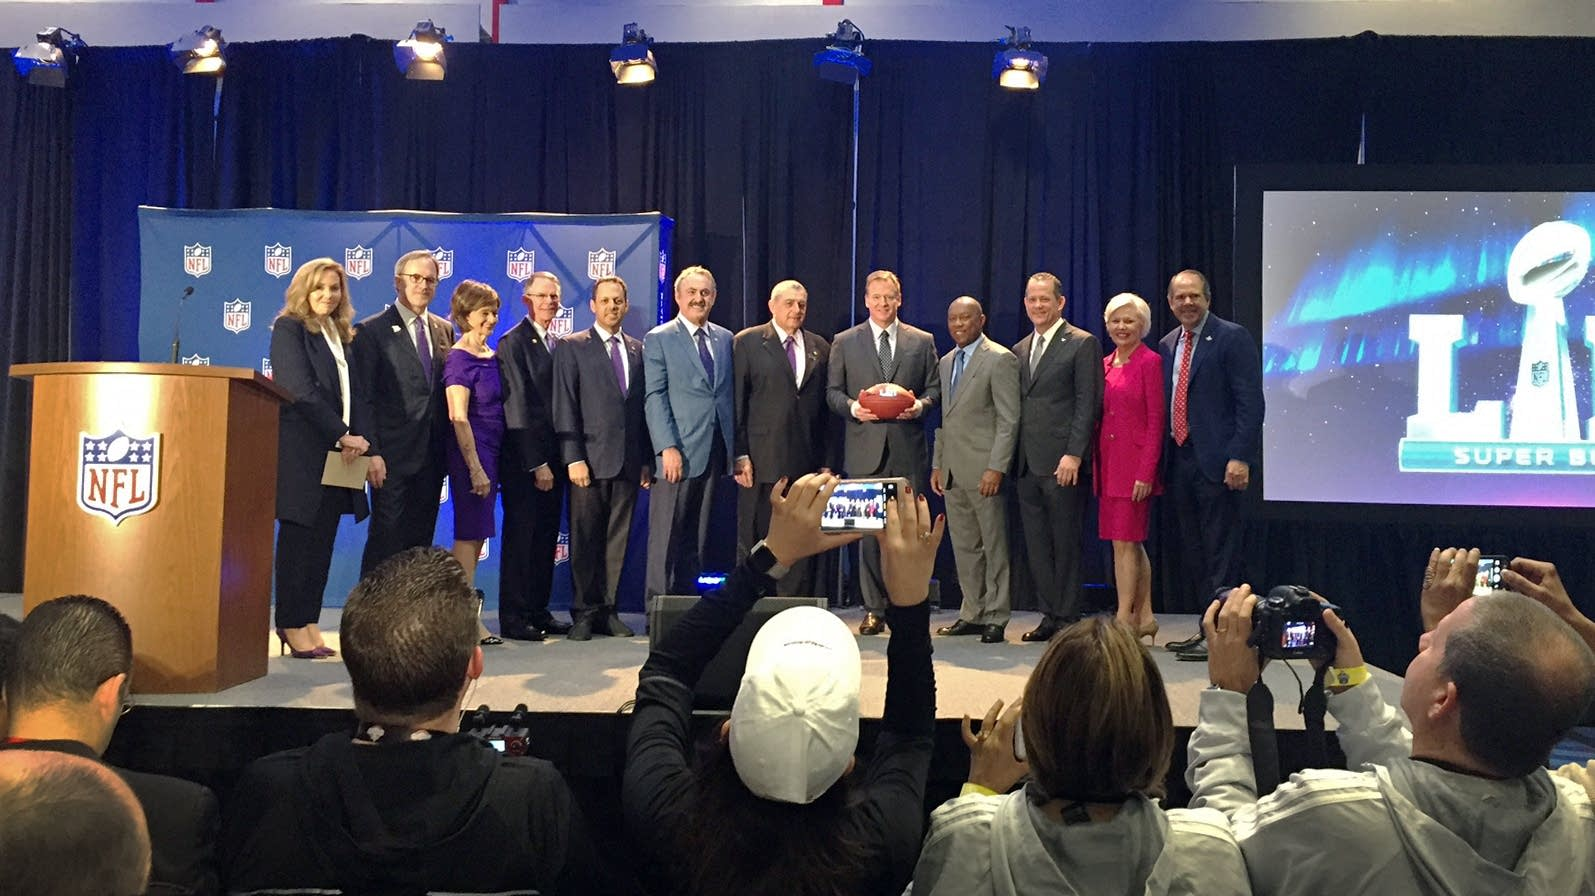 Roger Goodell hands the game ball to the Minn. Super Bowl Host Committee.